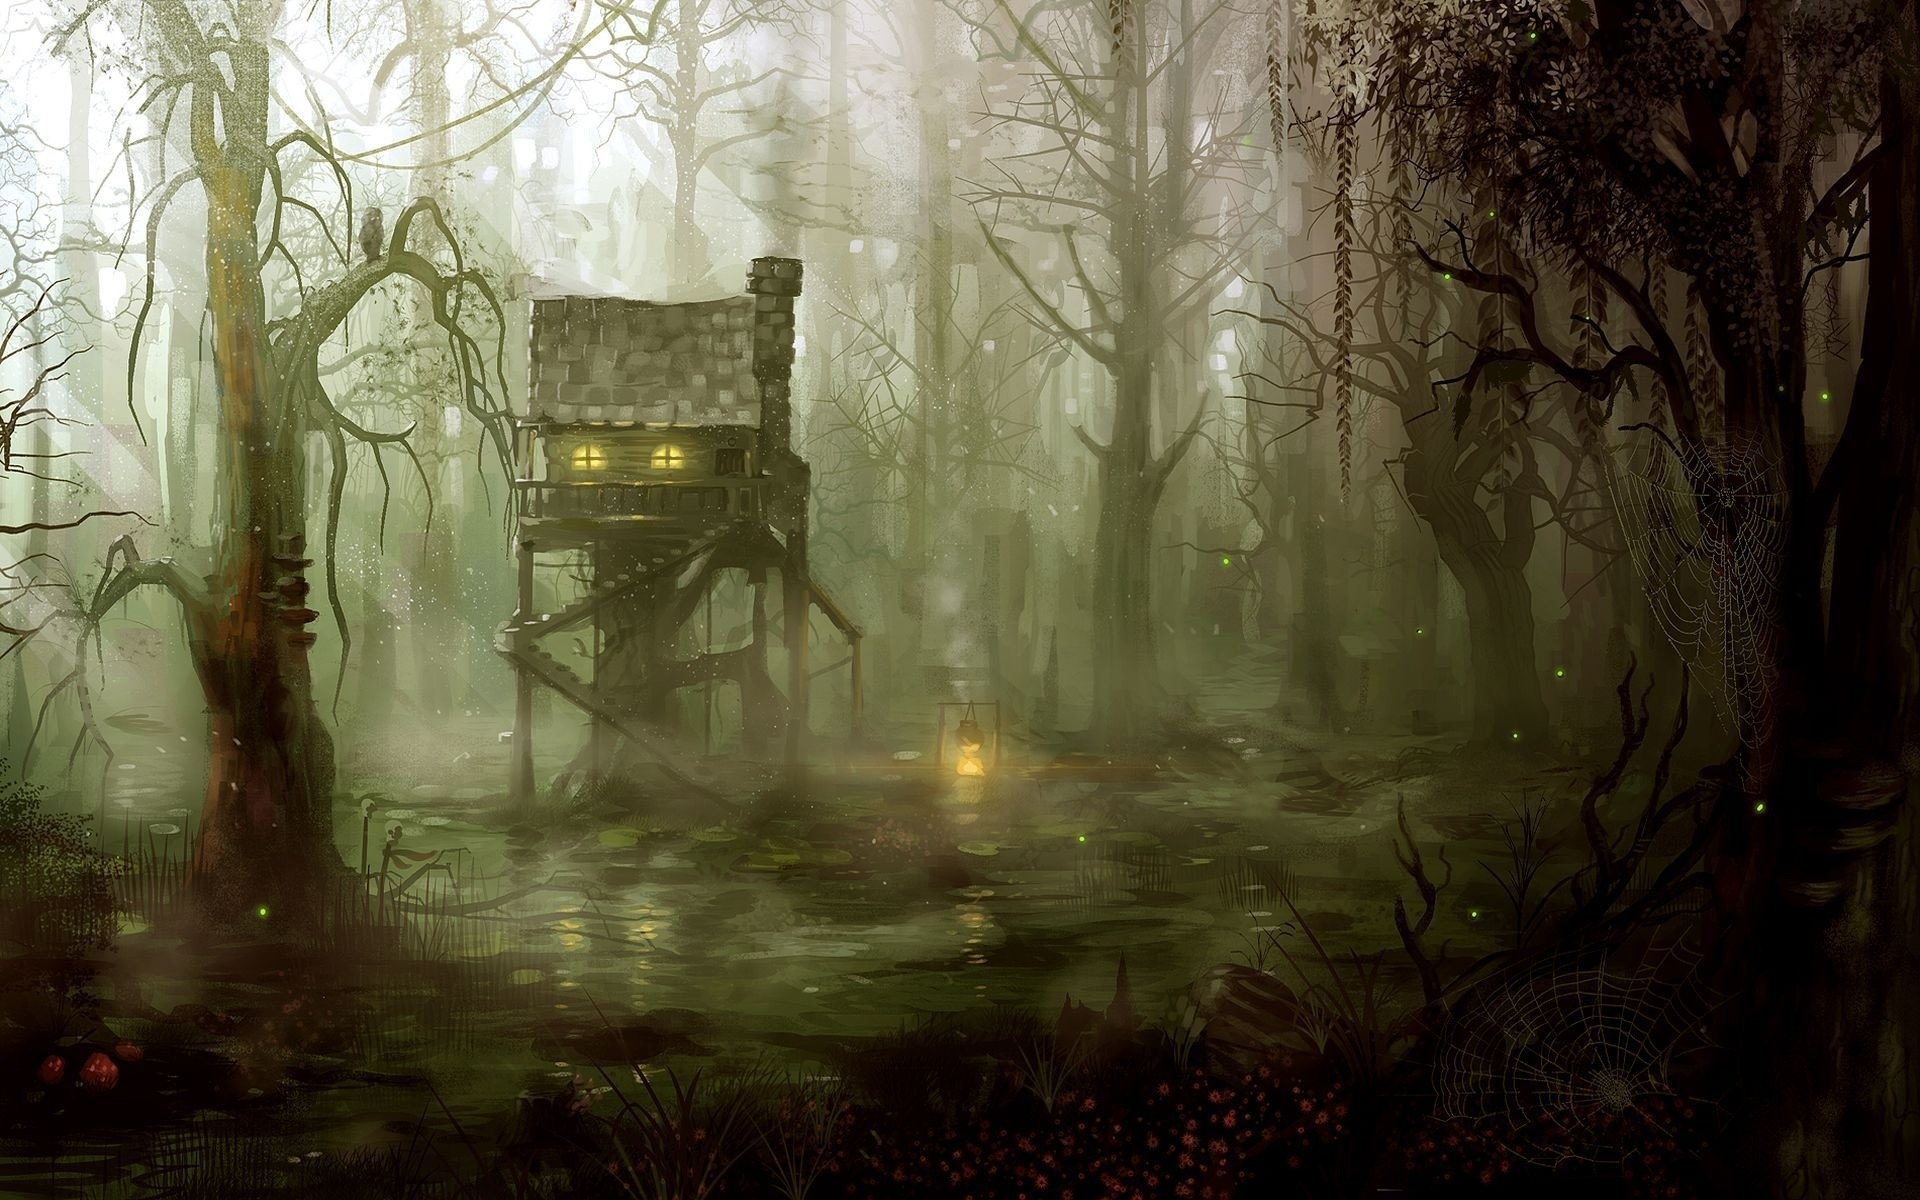 Fantasy art artistic drawing painting dark spooky architecture buildings  houses swamp jungle forest trees fire flames